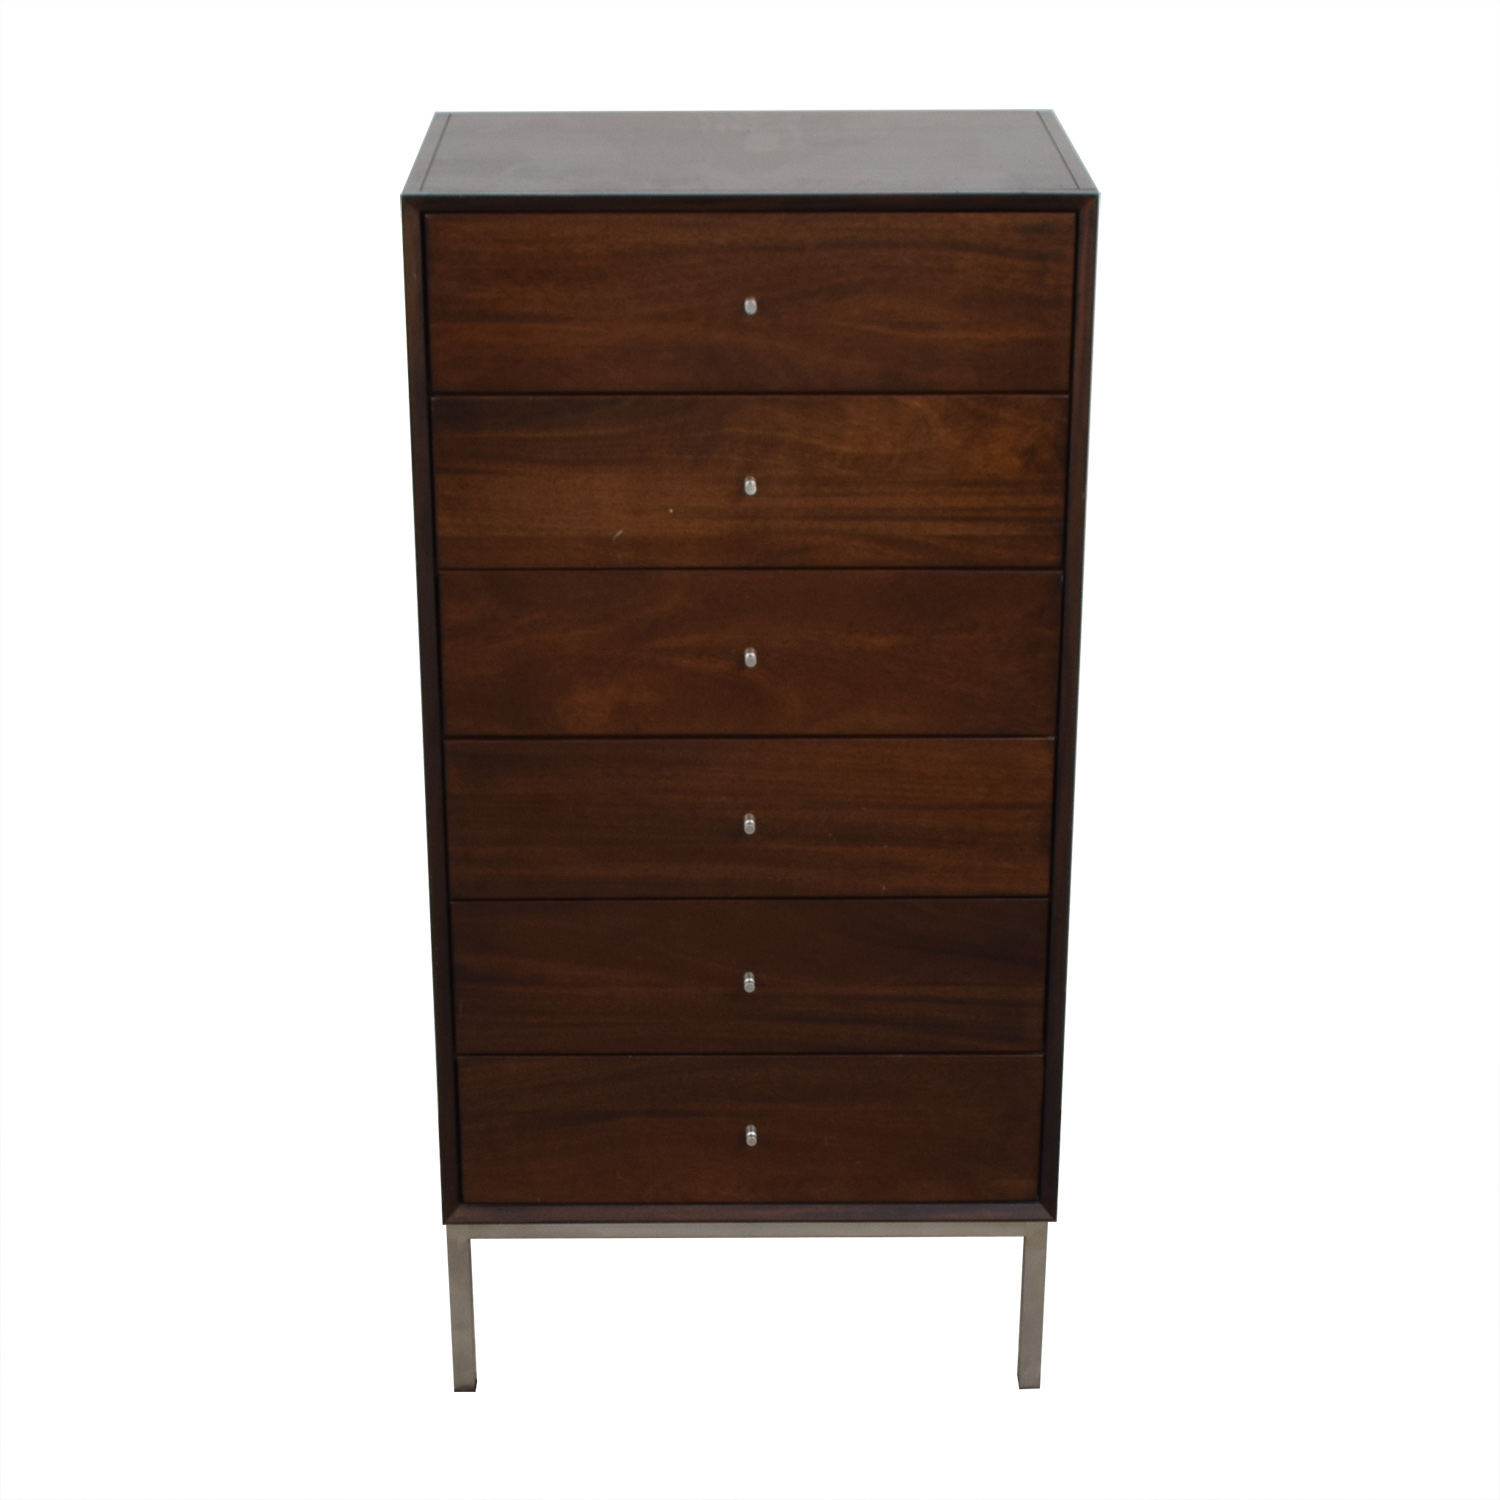 Room & Board Room & Board Delano Walnut Six-Drawer Dresser for sale